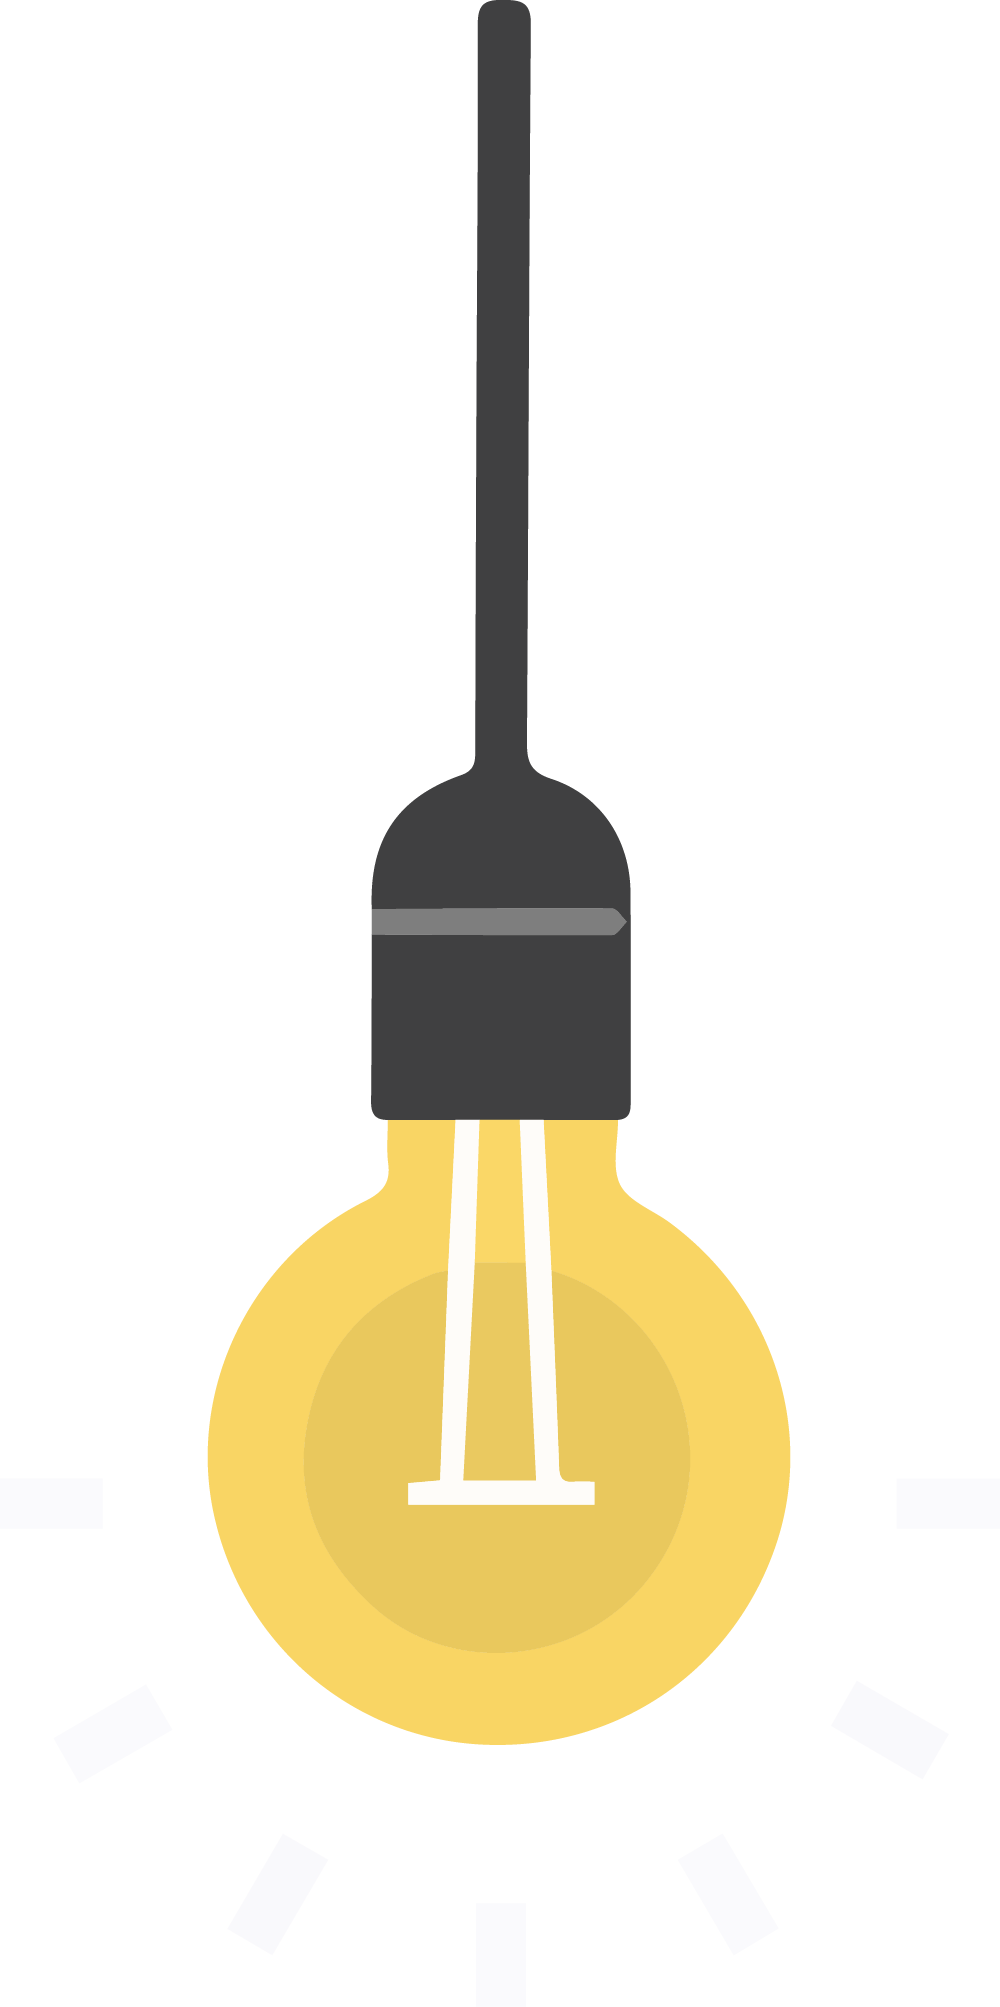 A lightbulb for our Excite approach in our four E's change management procedure